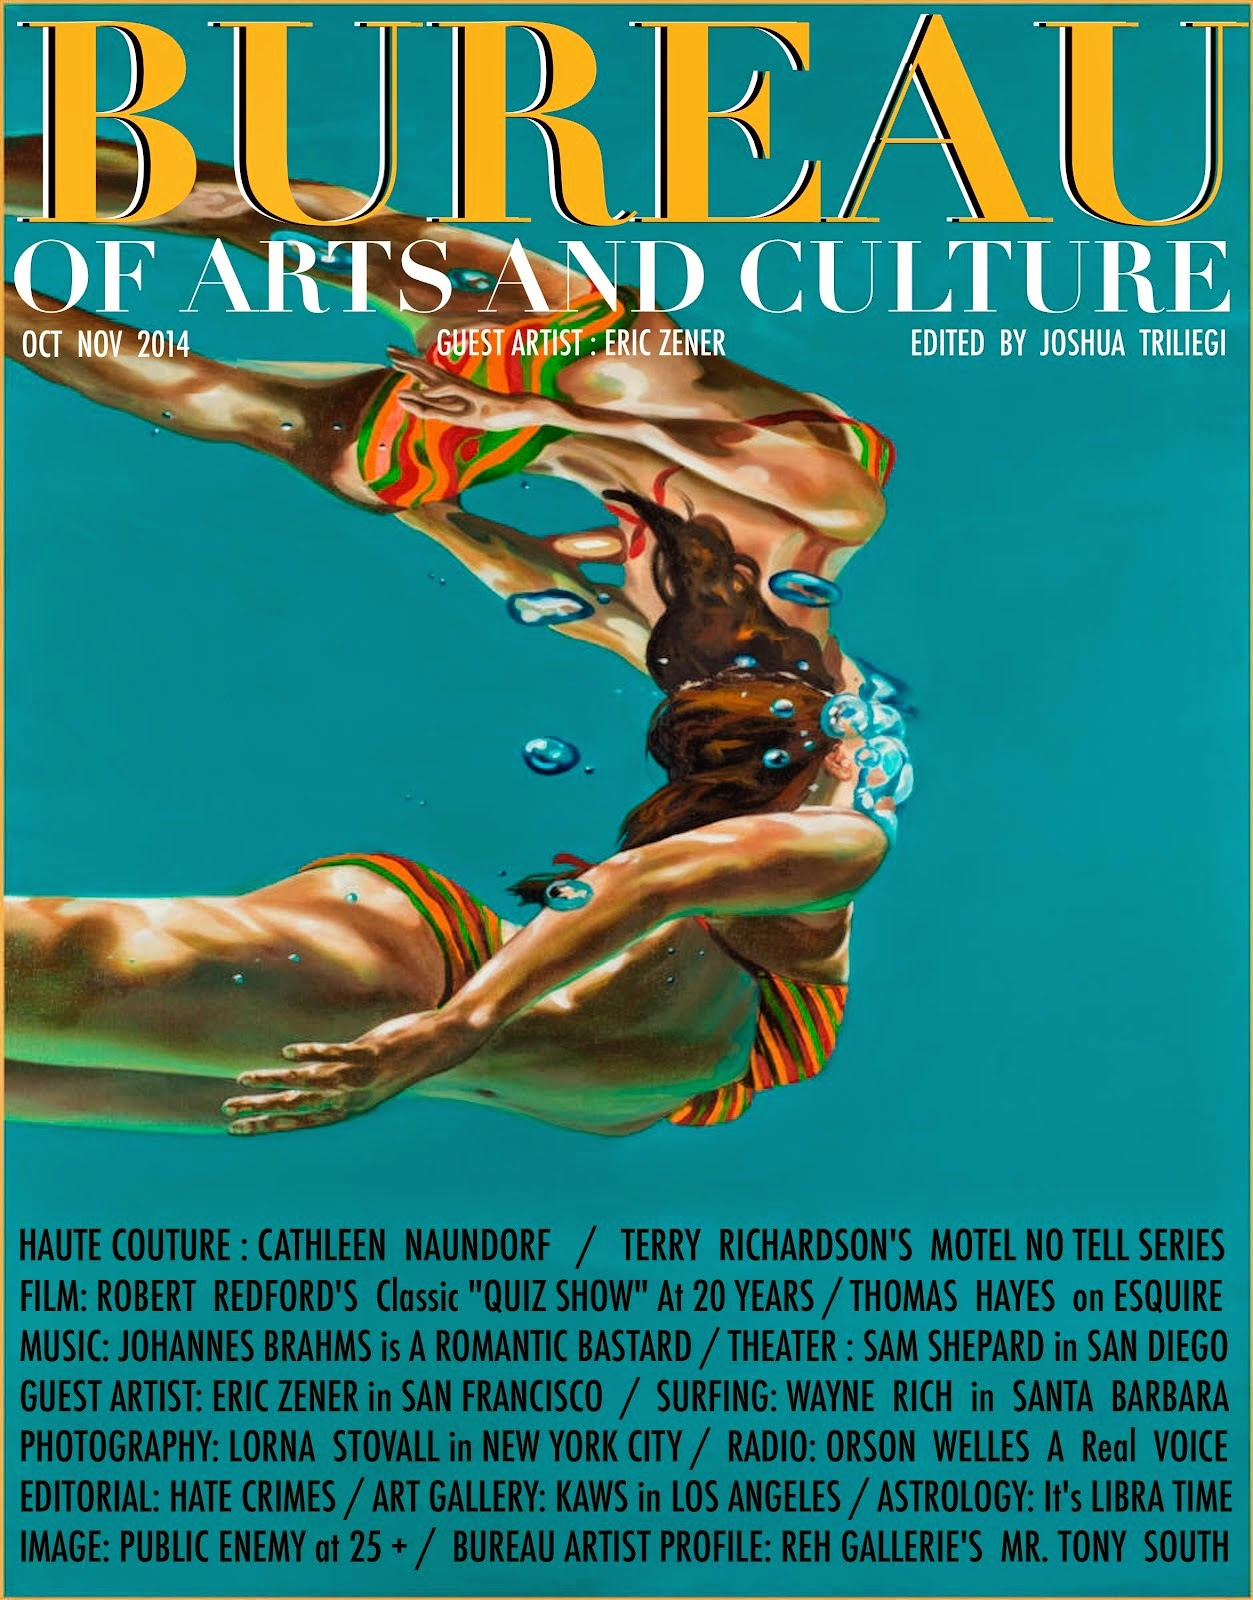 TAP FREE Edition of BUREAU of ARTS and Culture MAGAZINE ERIC ZENER GUEST ARTIST